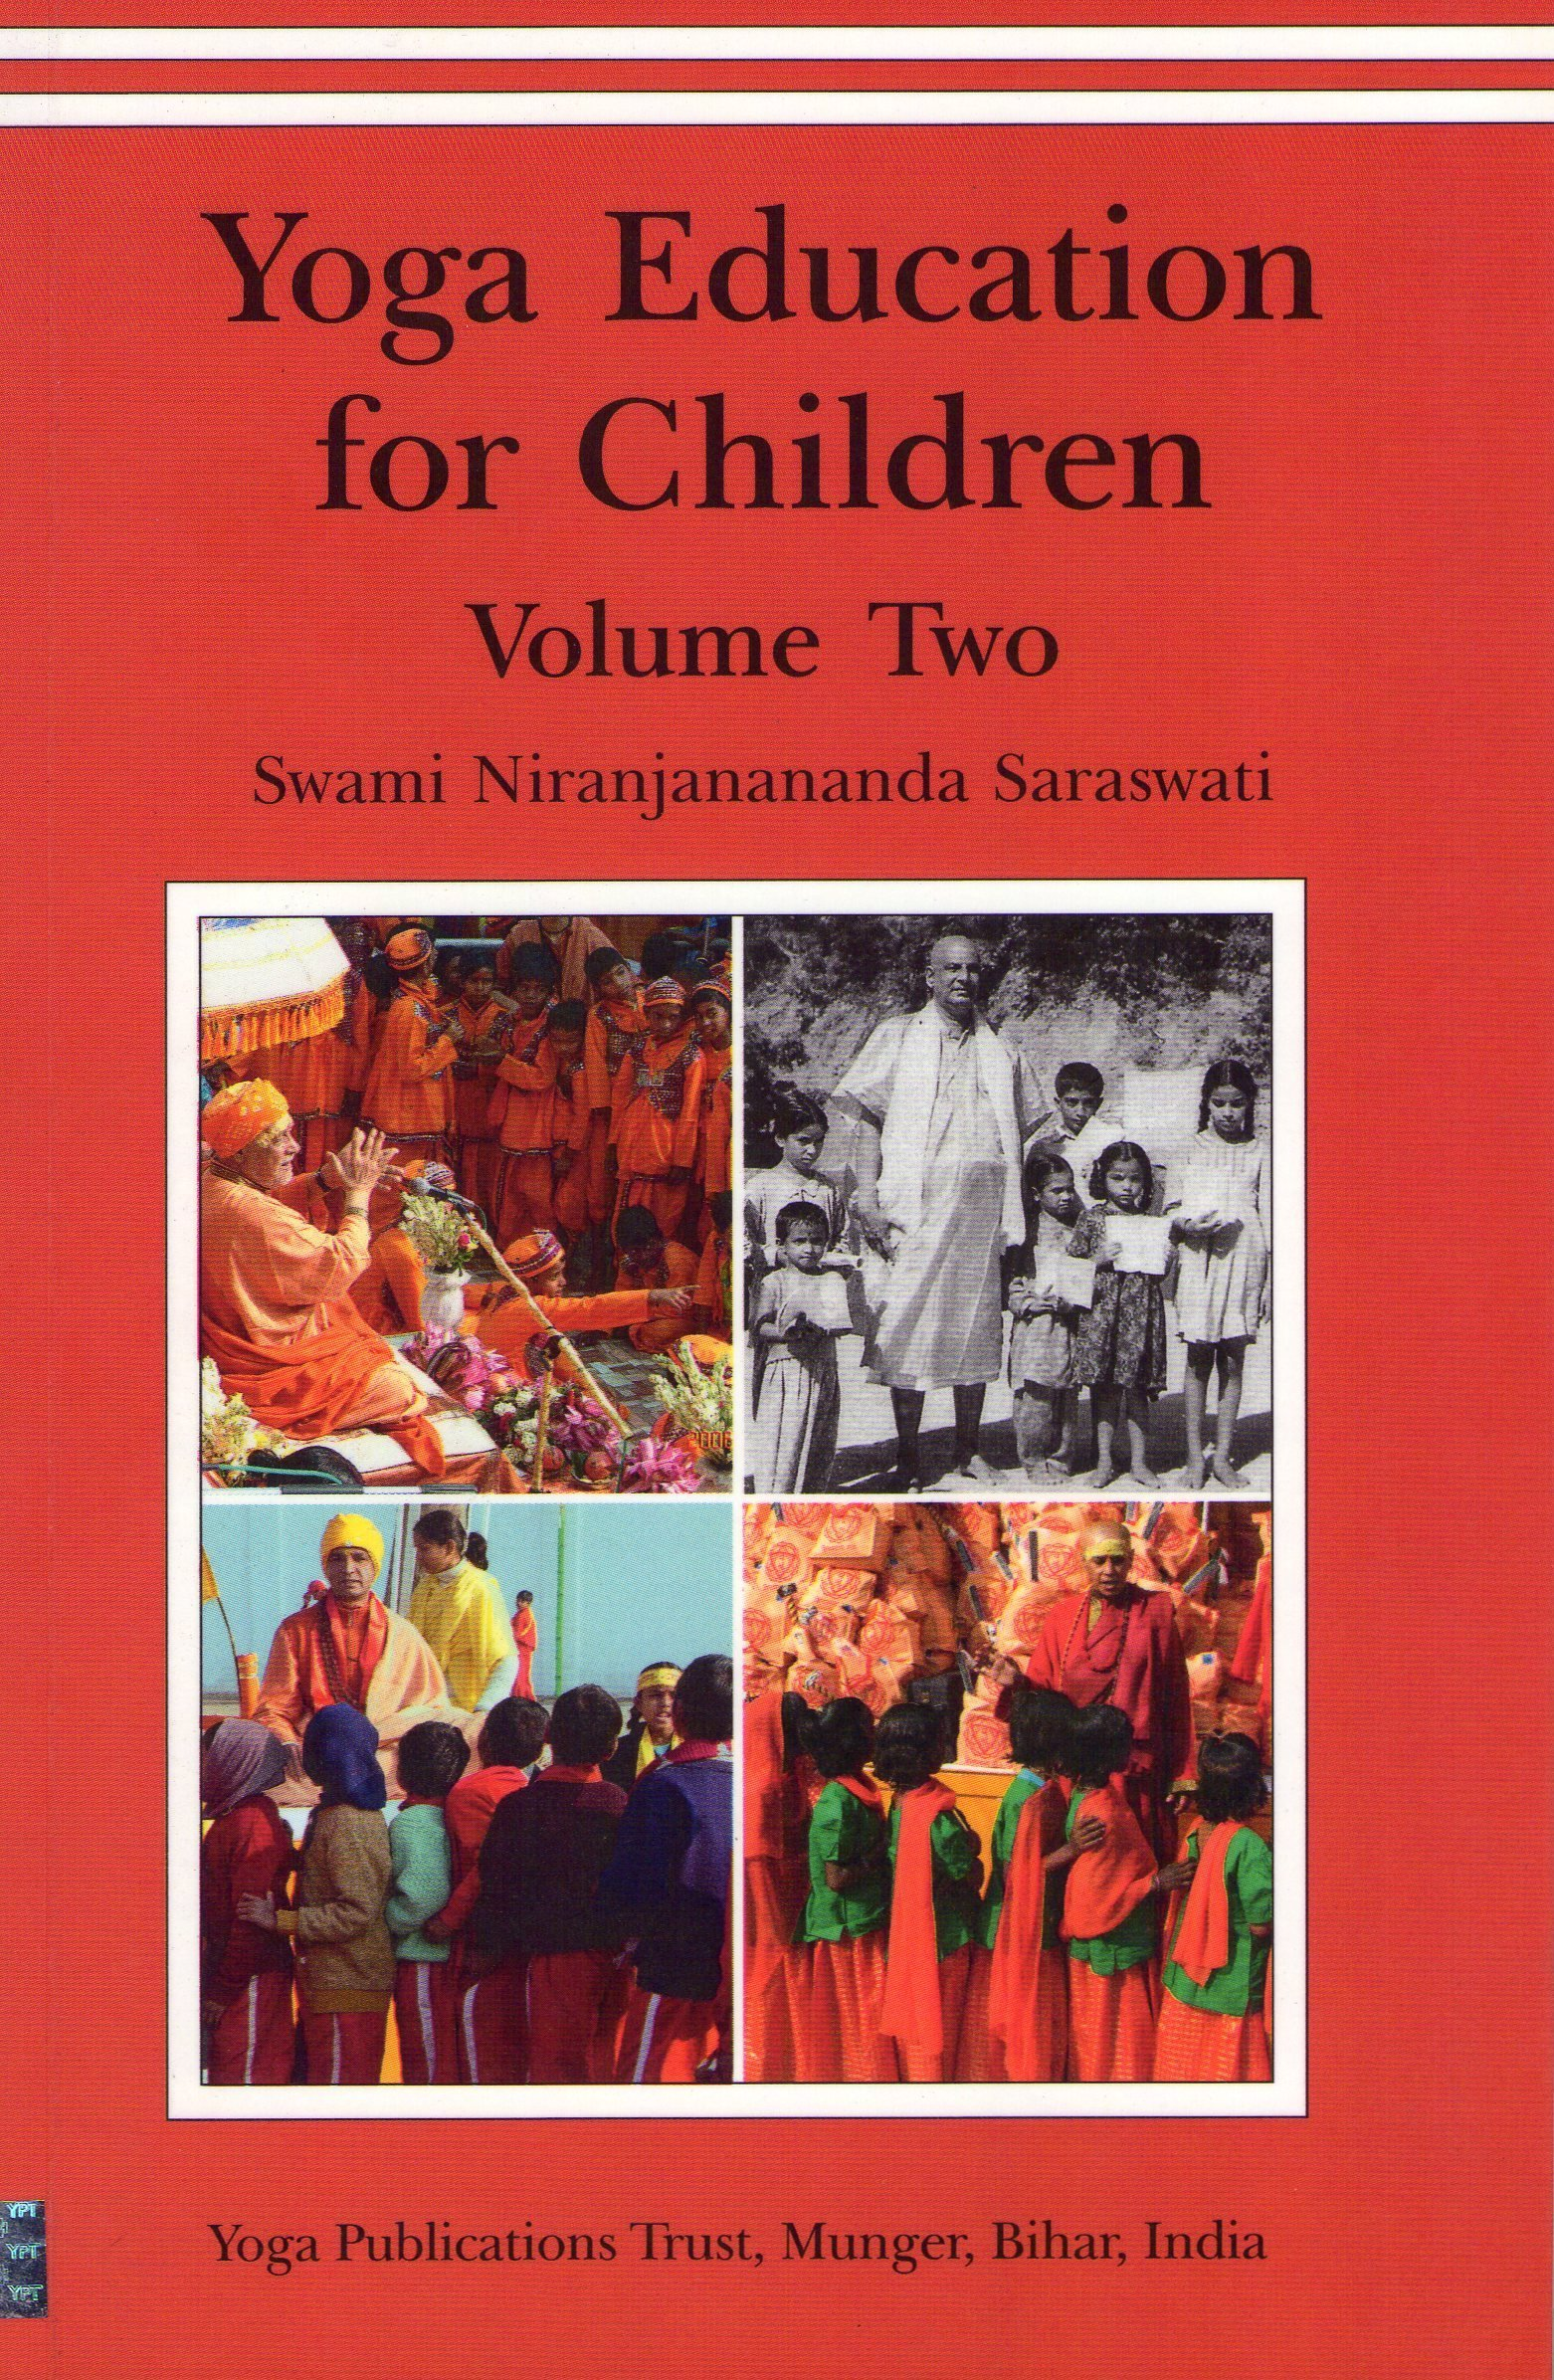 Yoga Education for Children (Volume - II): Amazon.es: Swami ...